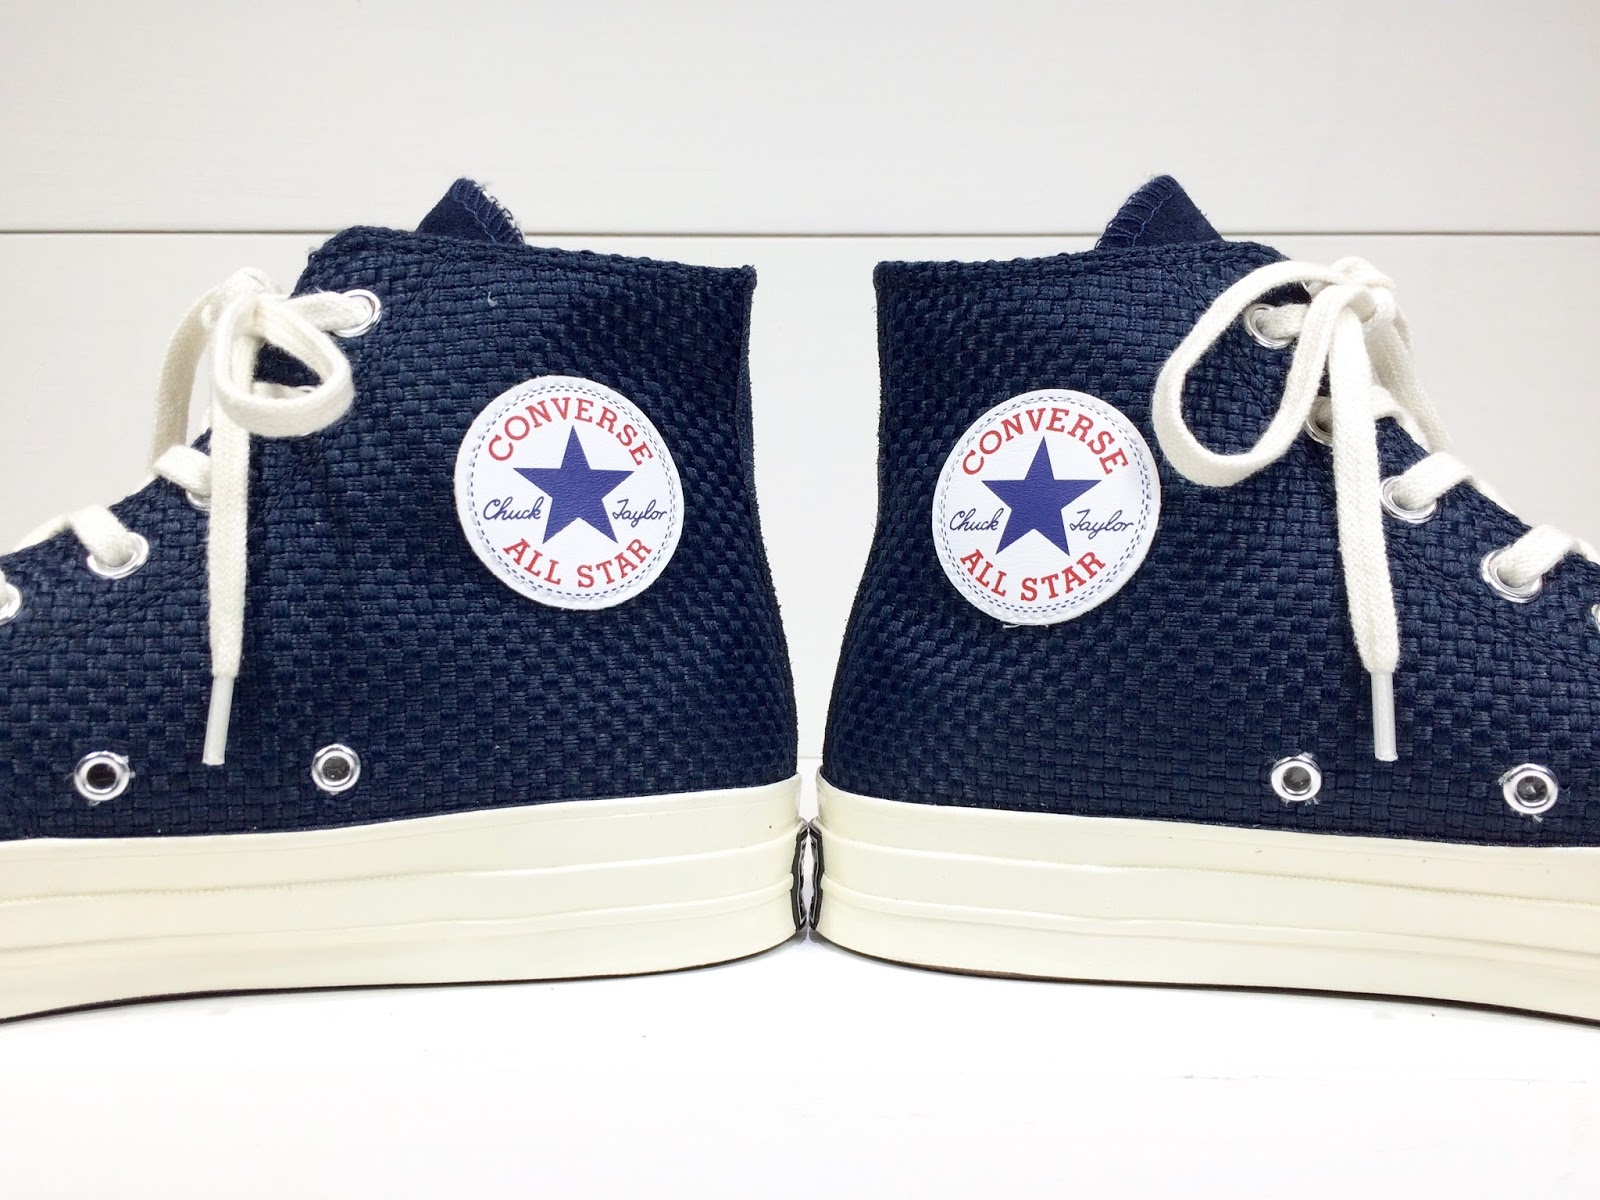 ea53bf46d3be Converse First String Chuck Taylor All Star 70  Woven High Top   Obsidian  Blue